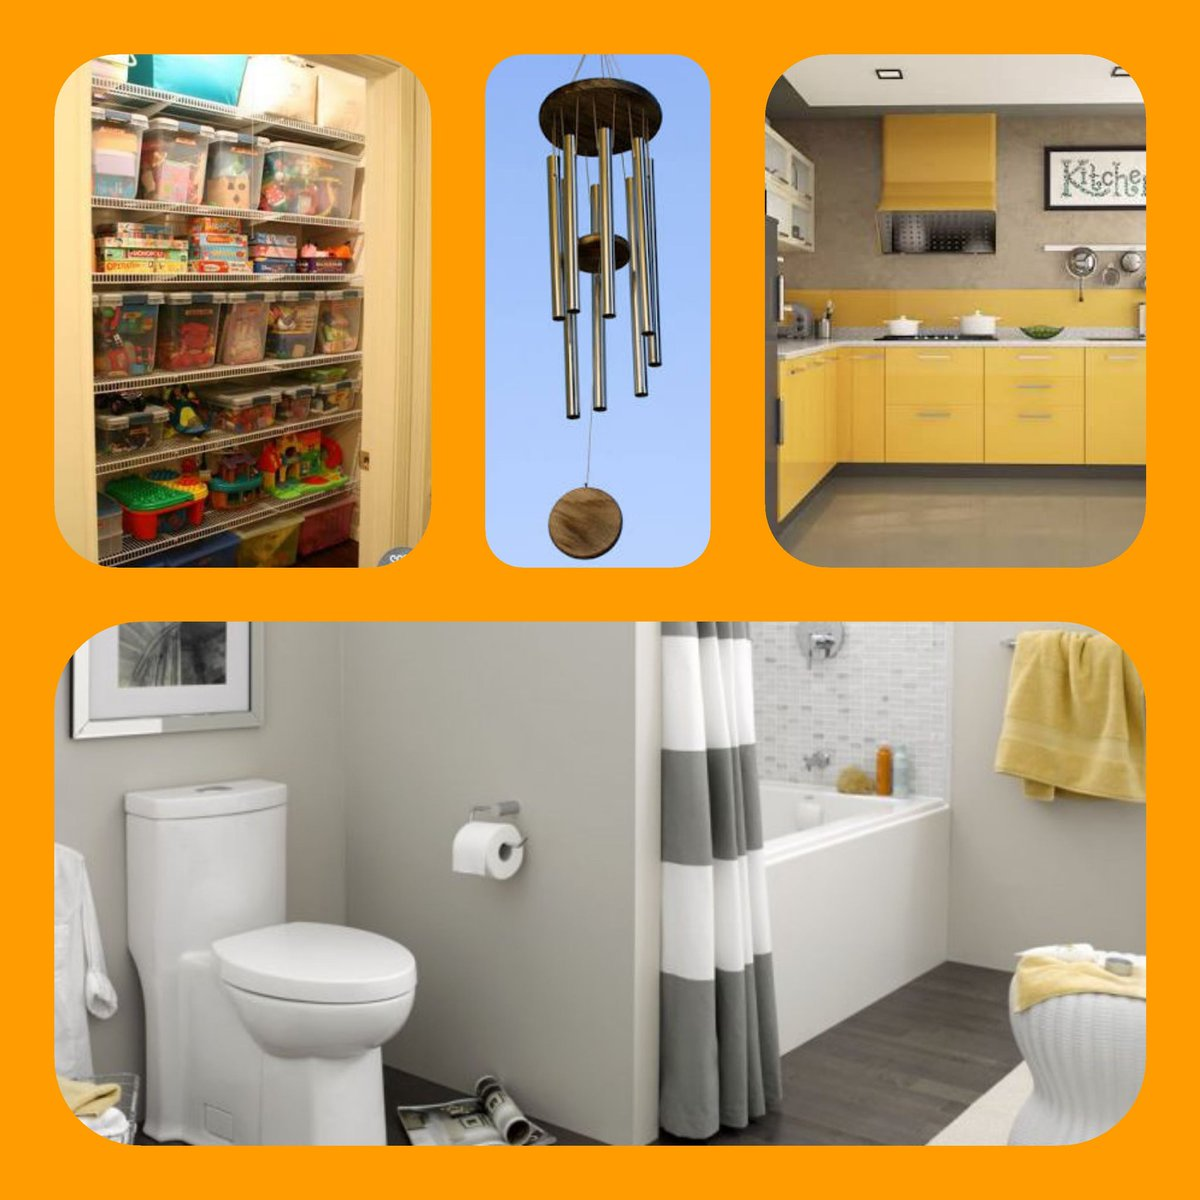 If the NE sector of ur #home is #toilet #storeroom #kitchen, hang a 6 #metalrodwindchime in d room. This exhausts d #earthenergy there.<br>http://pic.twitter.com/AUXIzNBr2k